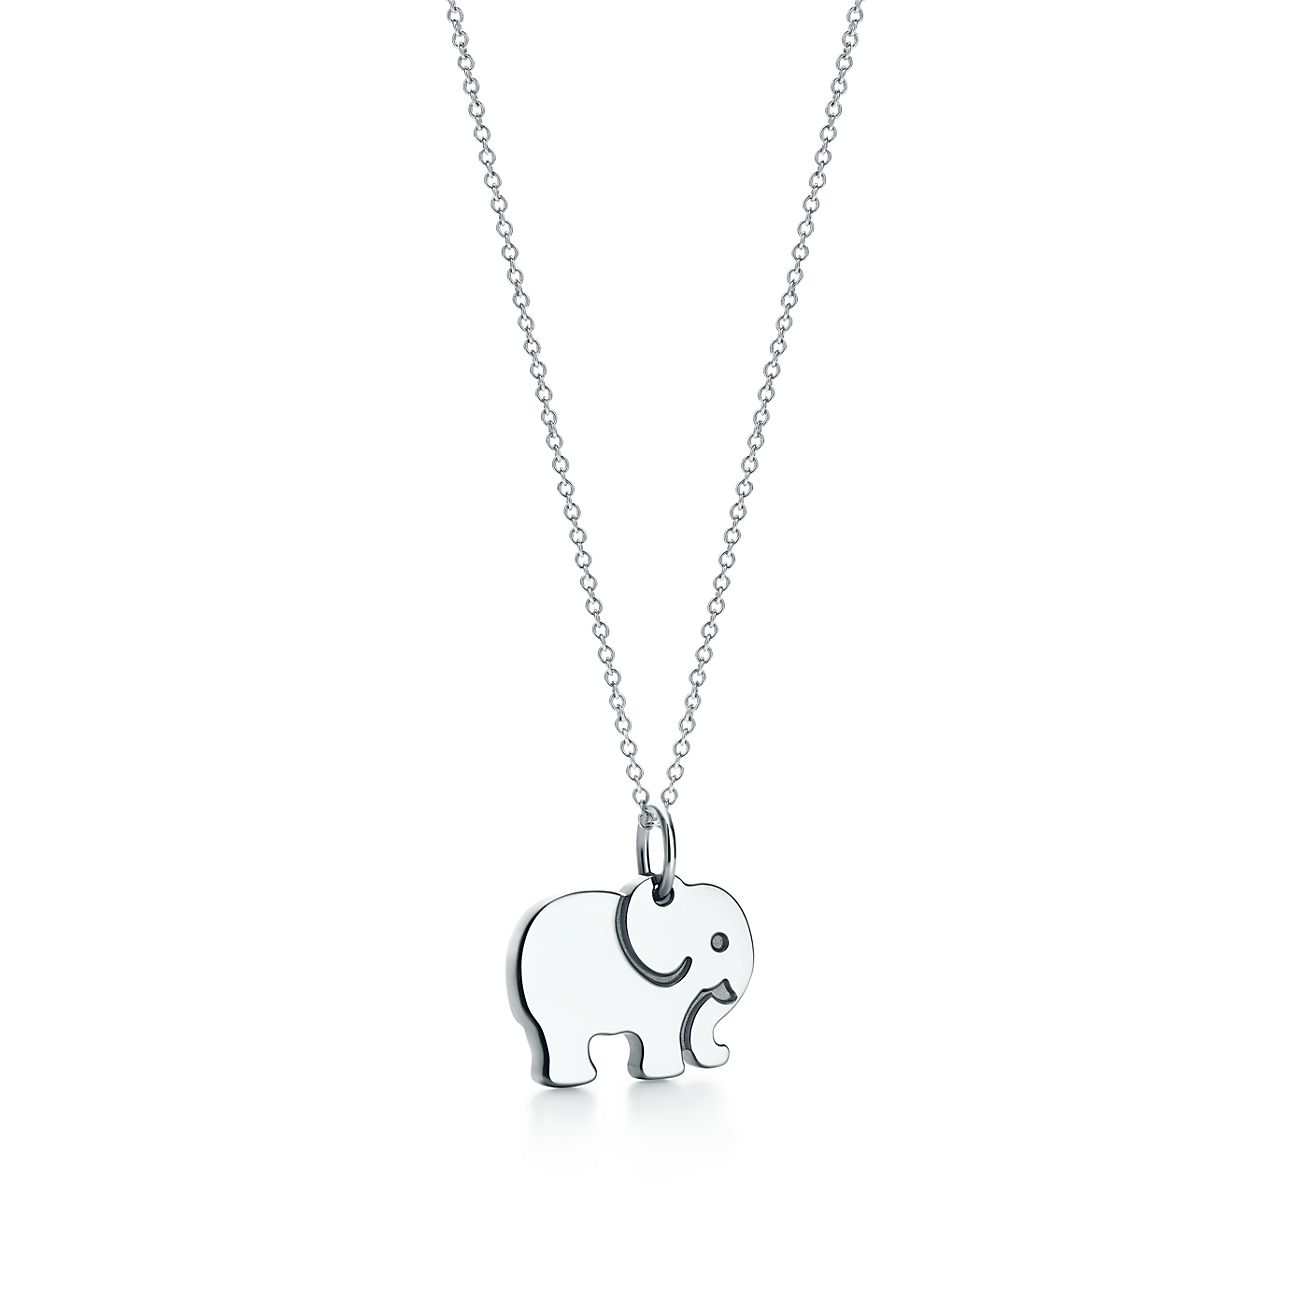 Tiffany charms elephant never forgets charm in sterling silver tiffany charmselephant never forgets charm audiocablefo light Images